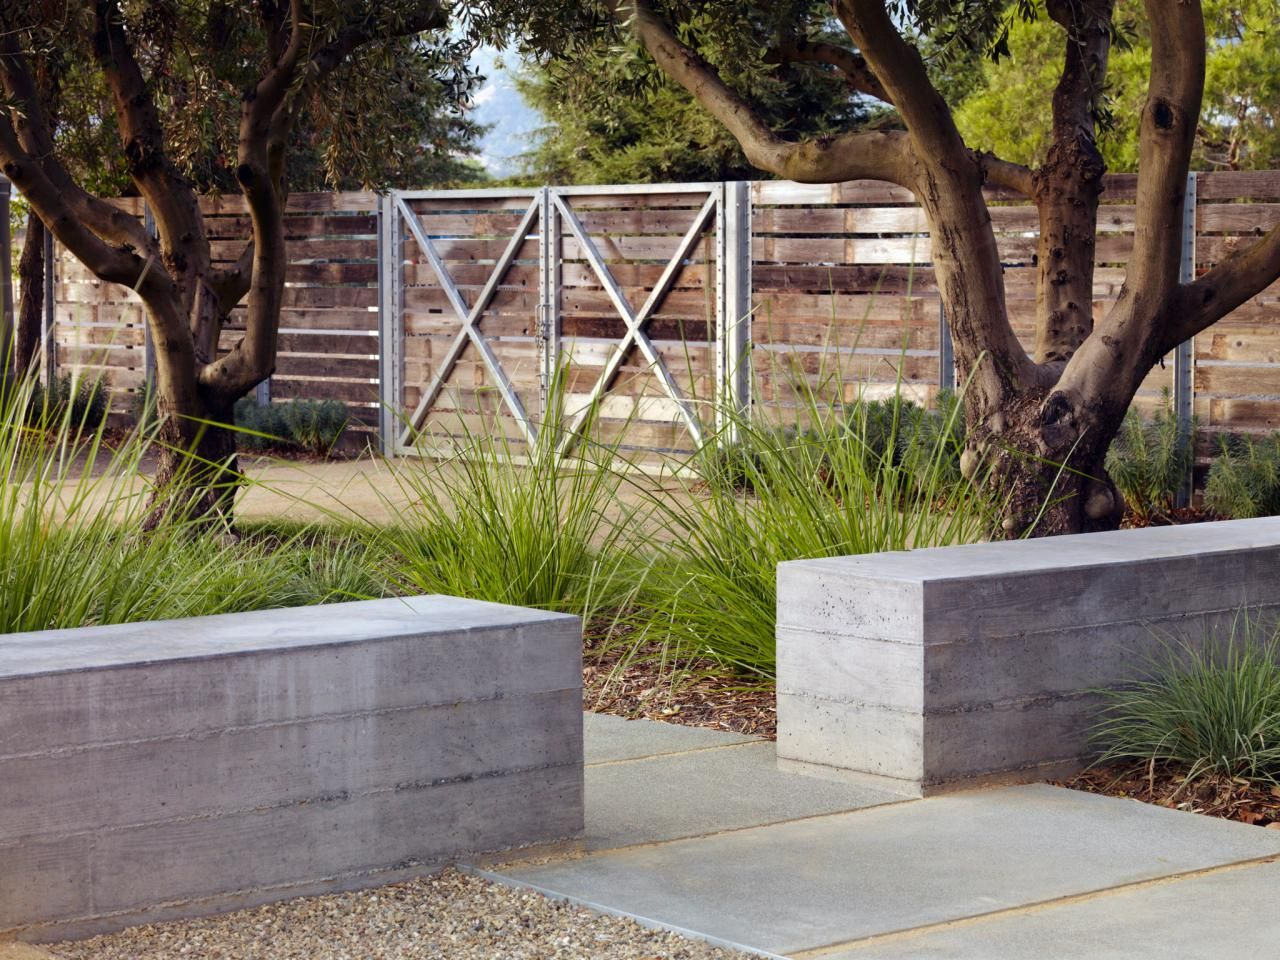 Ci Alsa4 How To Design A Space With Pavers Jpg Rend Hgtvcom 1280 960 Jpeg 1280 960 Modern Landscaping Concrete Retaining Walls Concrete Planters